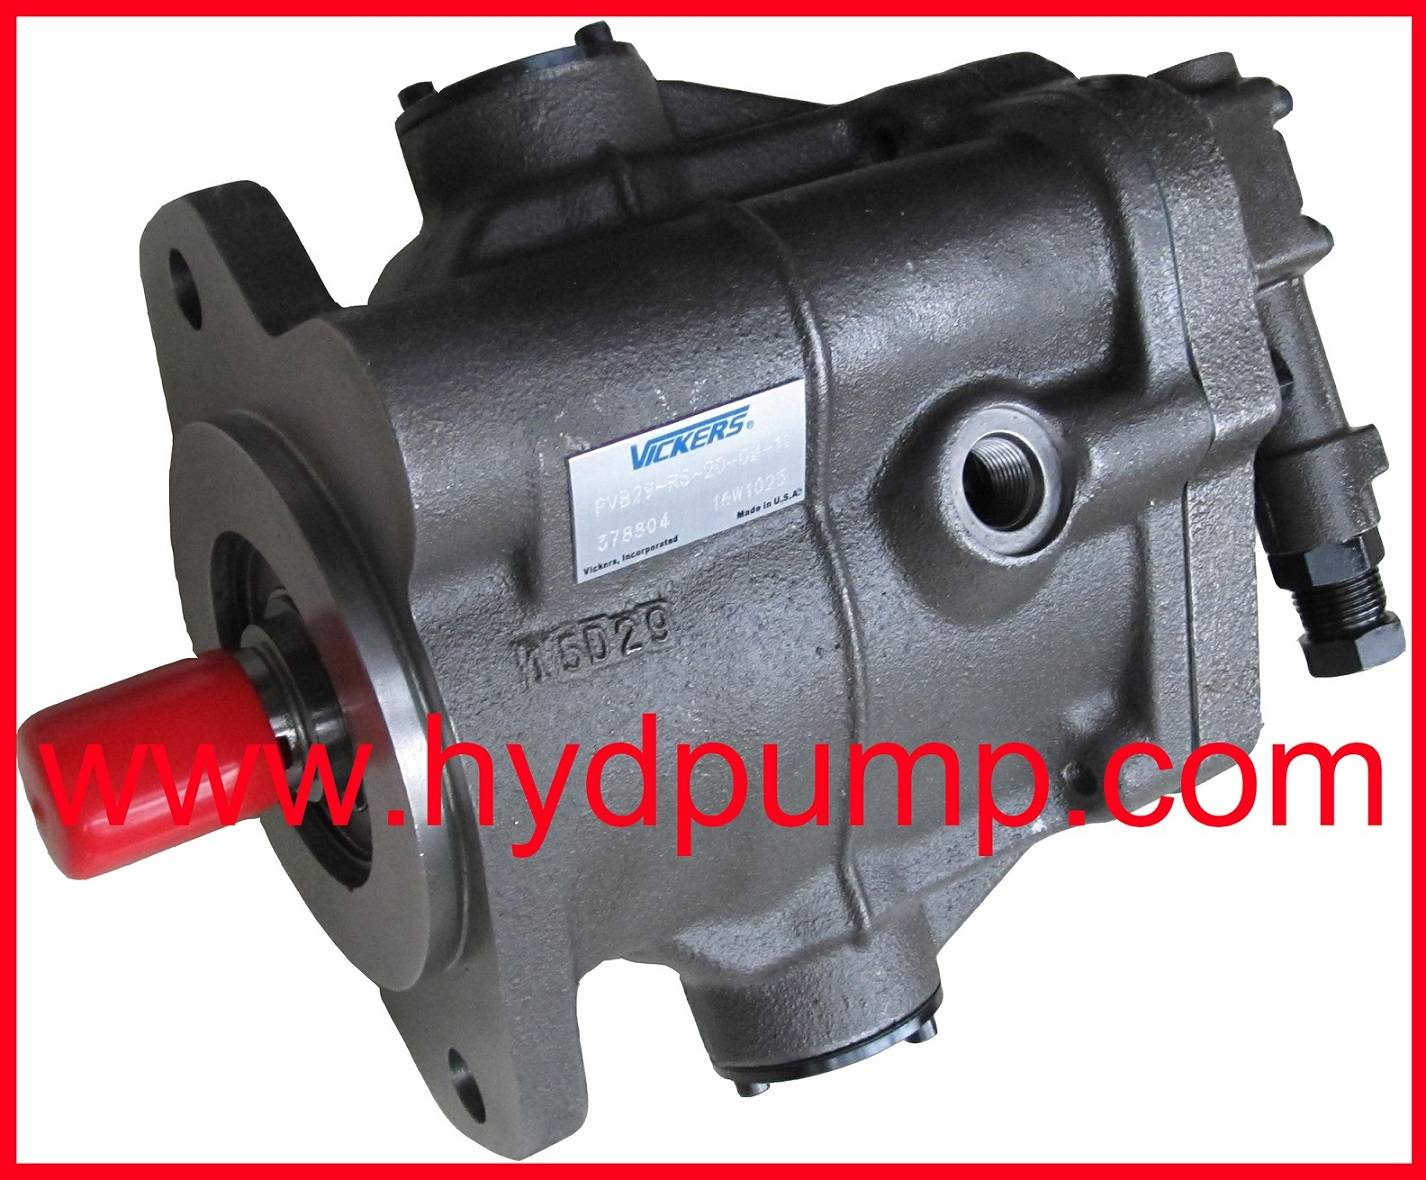 PVB5, PVB6, PVB10, PVB15, PVB20, PVB29, PVB45 and PFB Eaton Vickers Piston PVB Hydraulic pump